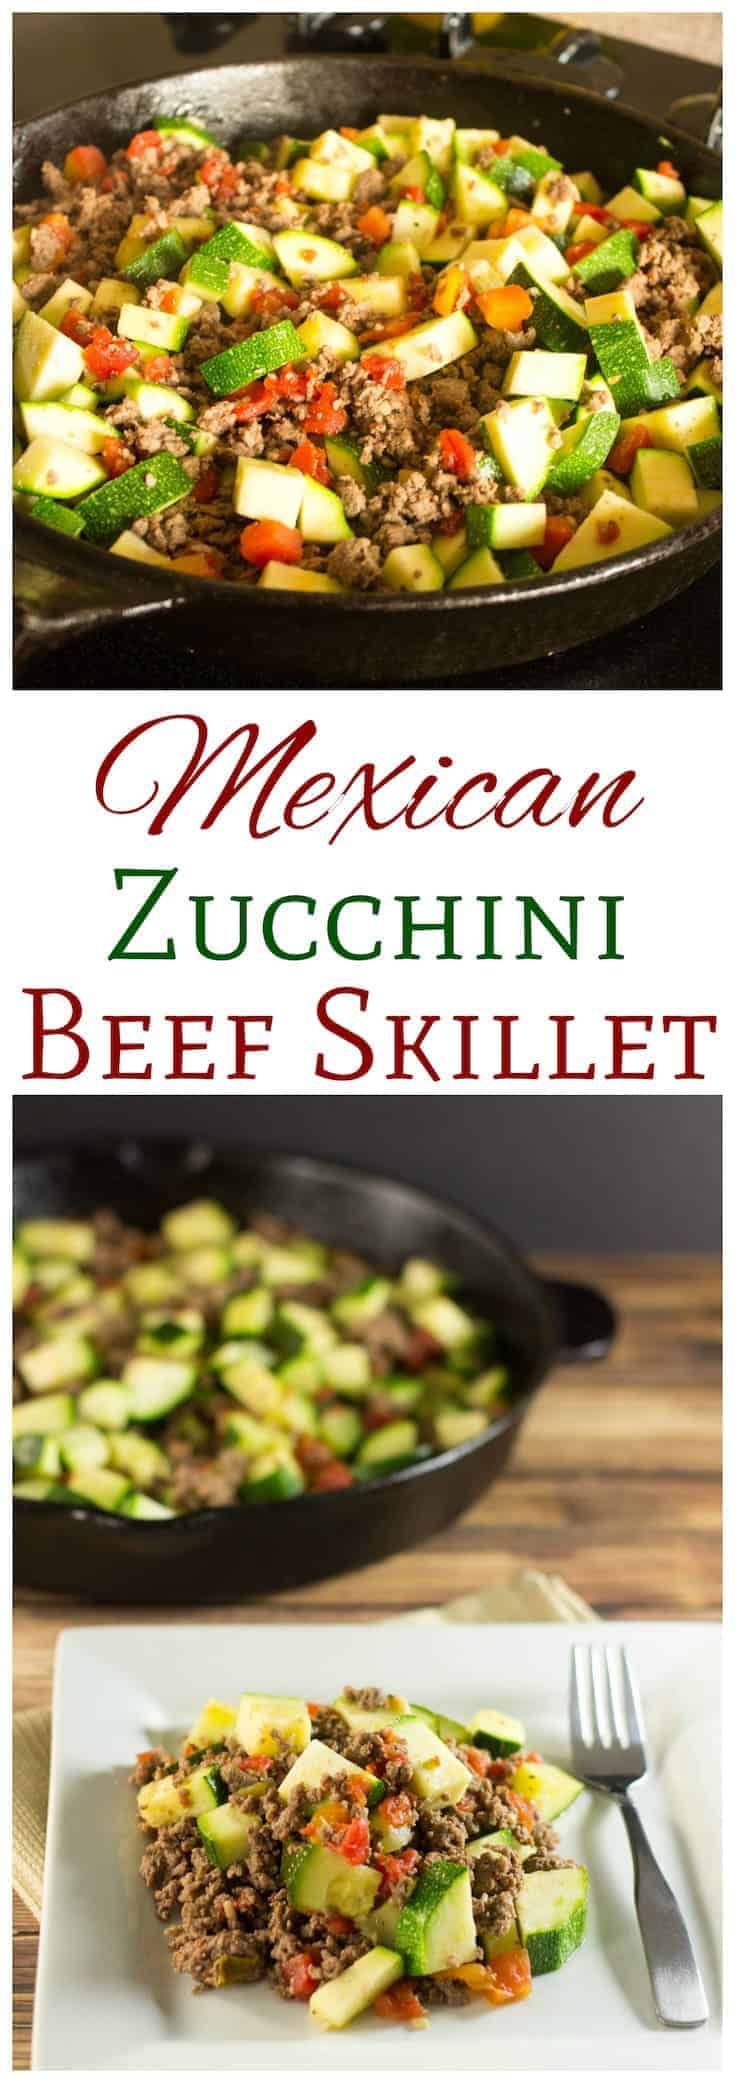 This Low Carb Mexican Zucchini And Ground Beef Recipe Is A Simple Dish Made With